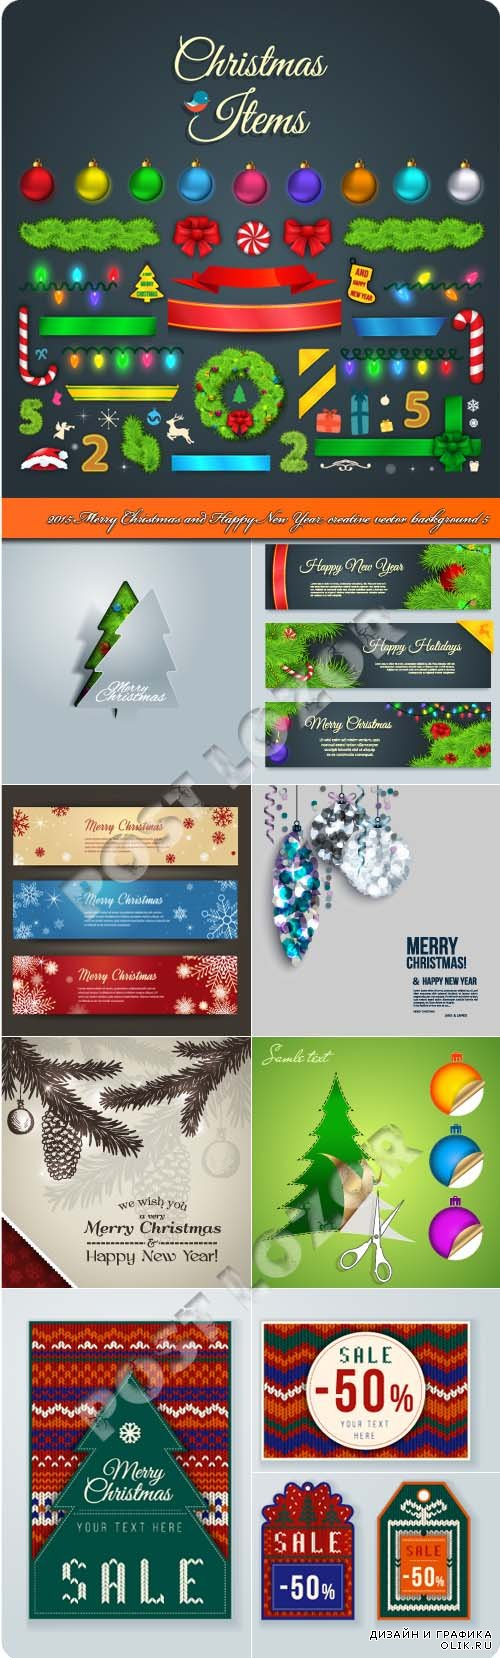 2015 Merry Christmas and Happy New Year creative vector background 5